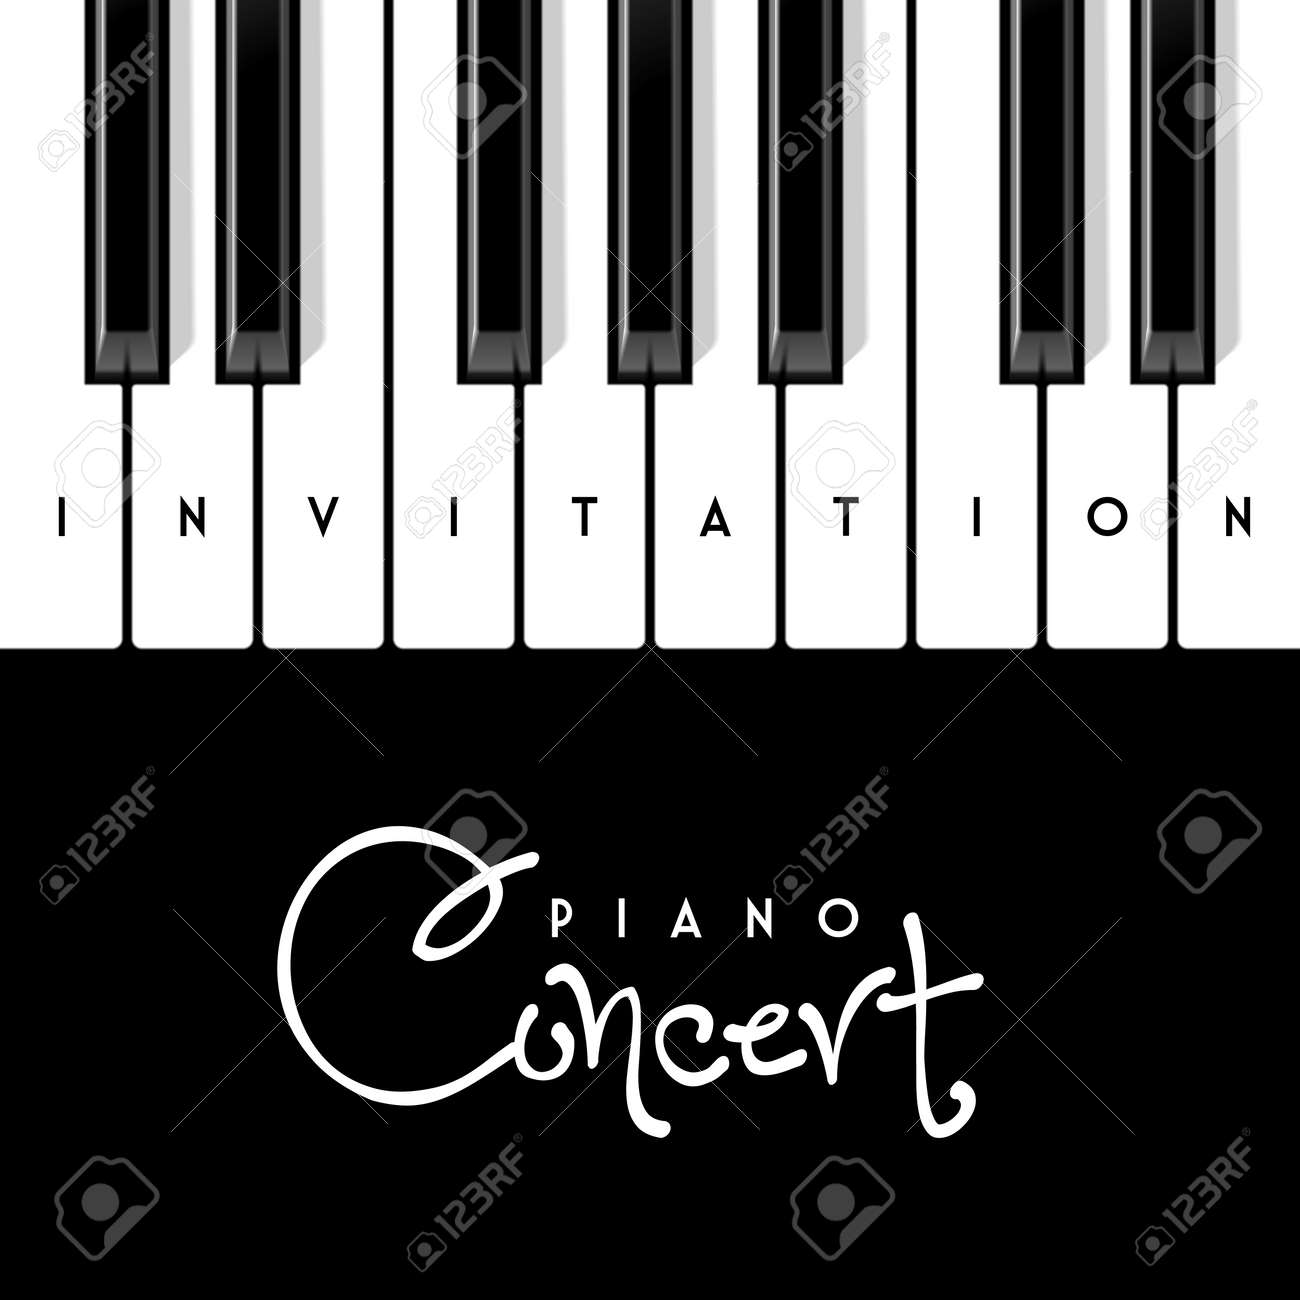 piano concert invitation design template royalty free cliparts